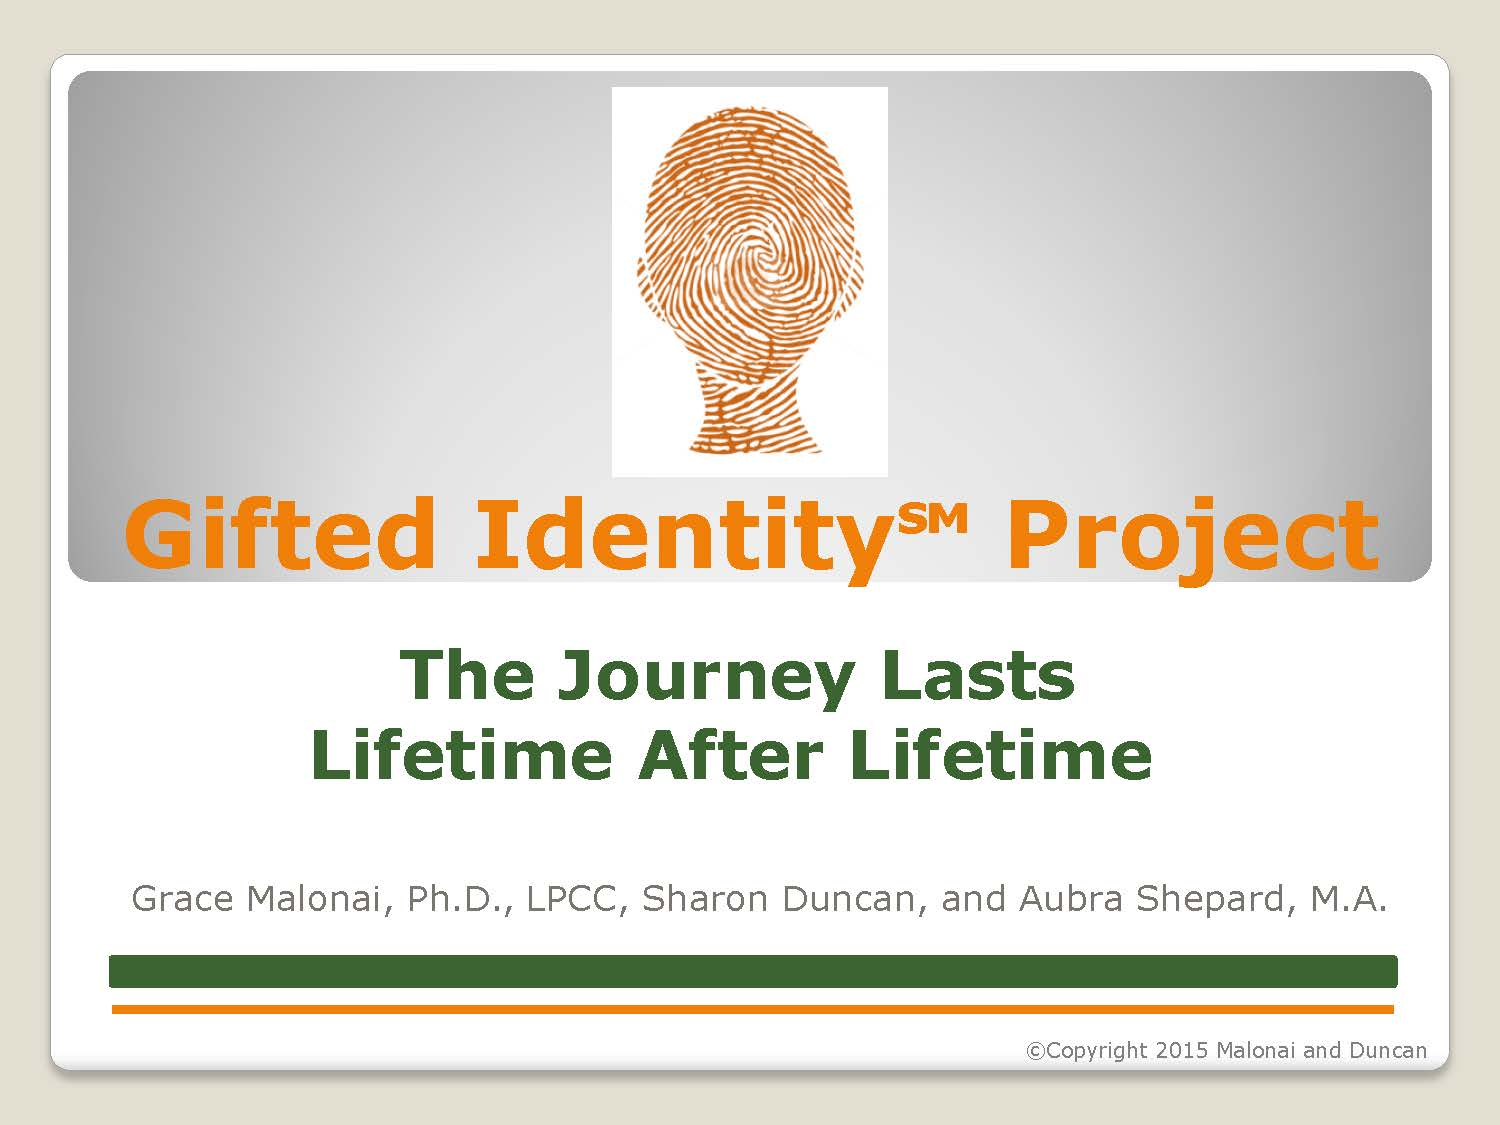 Gifted Identity Project The Journey Lasts Lifetime After Lifetime